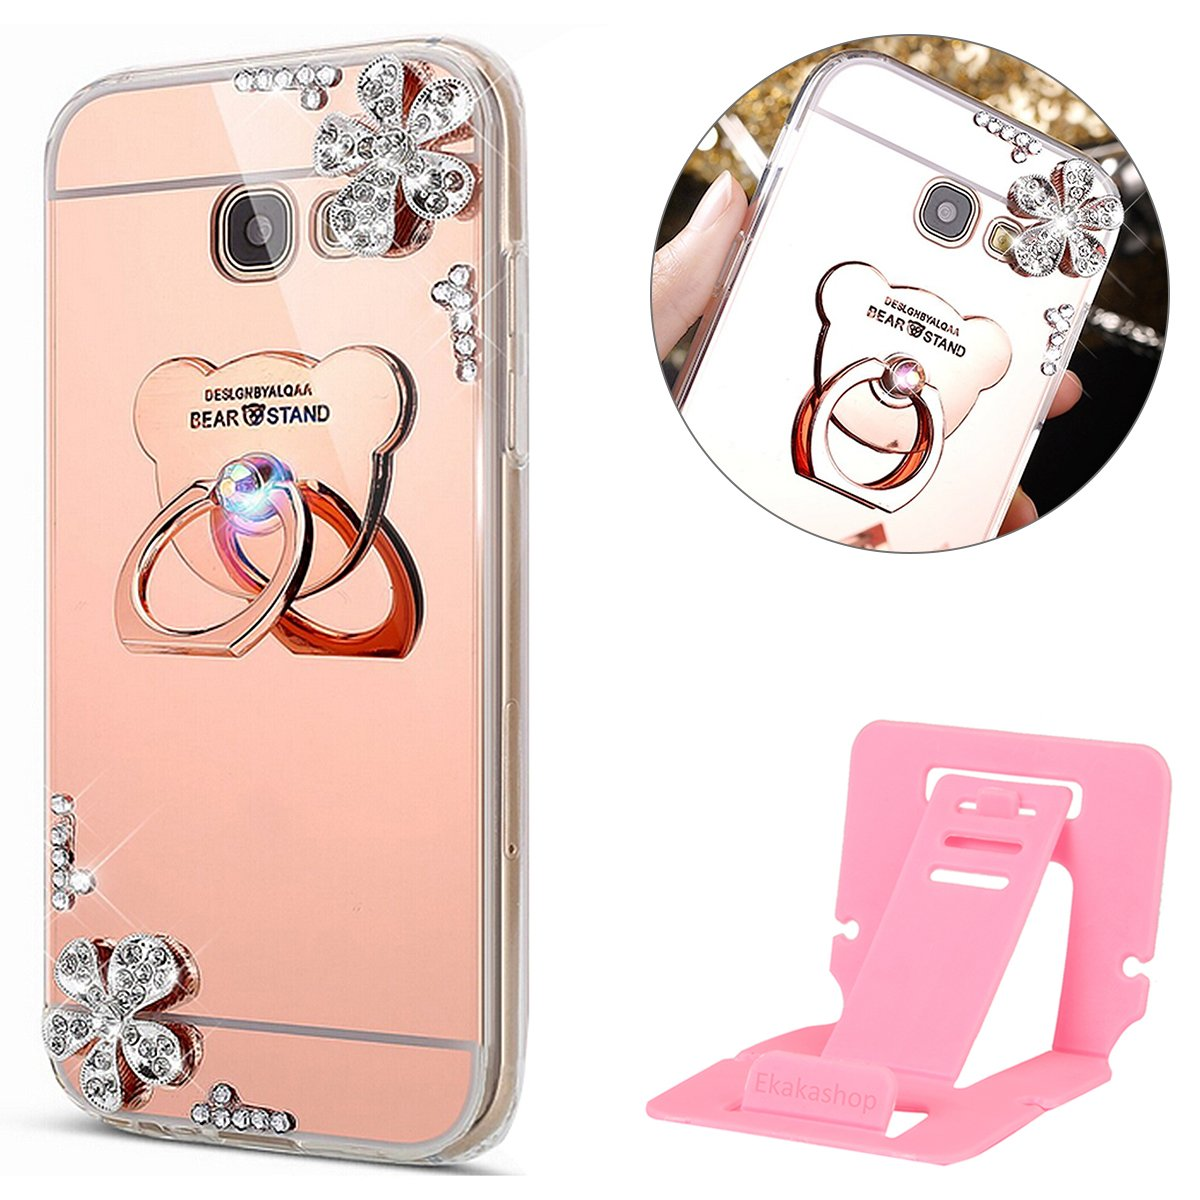 Coque Galaxy J3 2017 U.S. Edition Glitter Silicone, Miroir Coque pour Samsung Galaxy J3 Prime, Ekakashop Luxe Beau 3D Bling Shiny Brillant Mirror Effect Cover Ours Rose D'or Motif Soft TPU Silicone Transparent avec Strass Gliter Sparkle Protecteur Back Cov